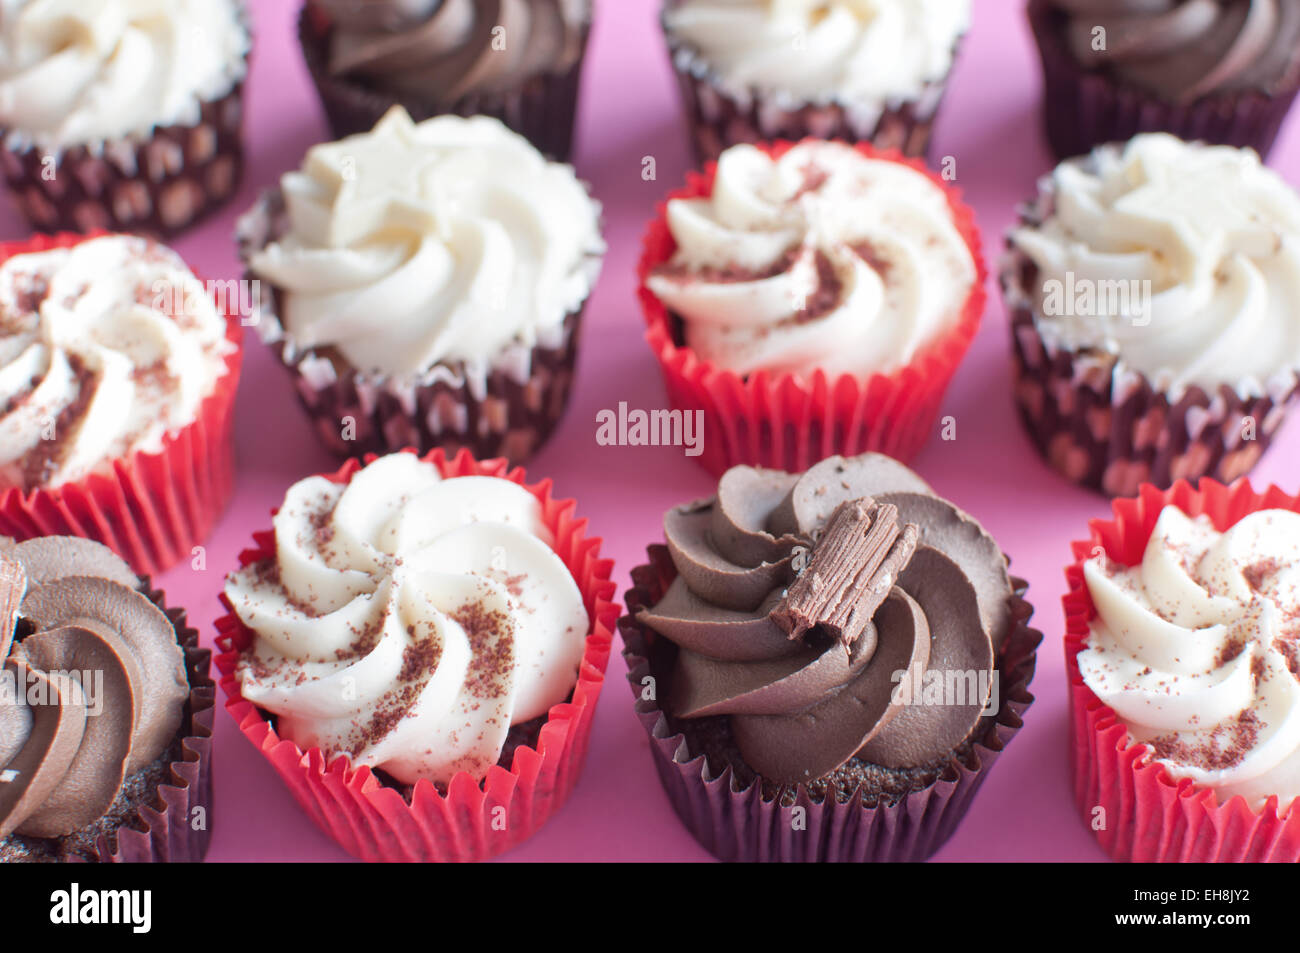 Cream cupcakes over a pink backdrop - Stock Image